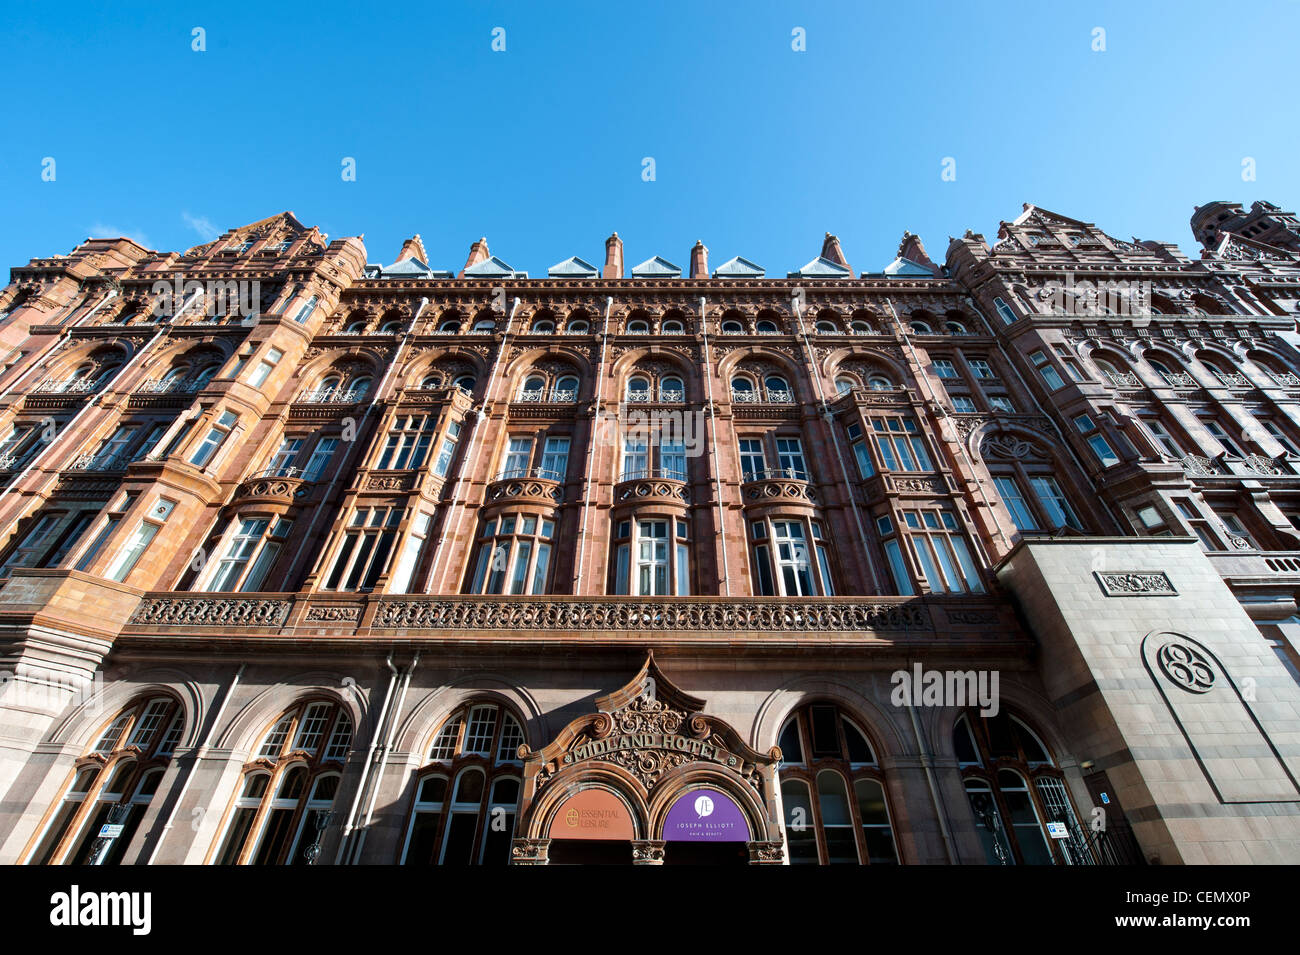 The Midland Hotel in Manchester City Centre on a clear blue sky day. - Stock Image